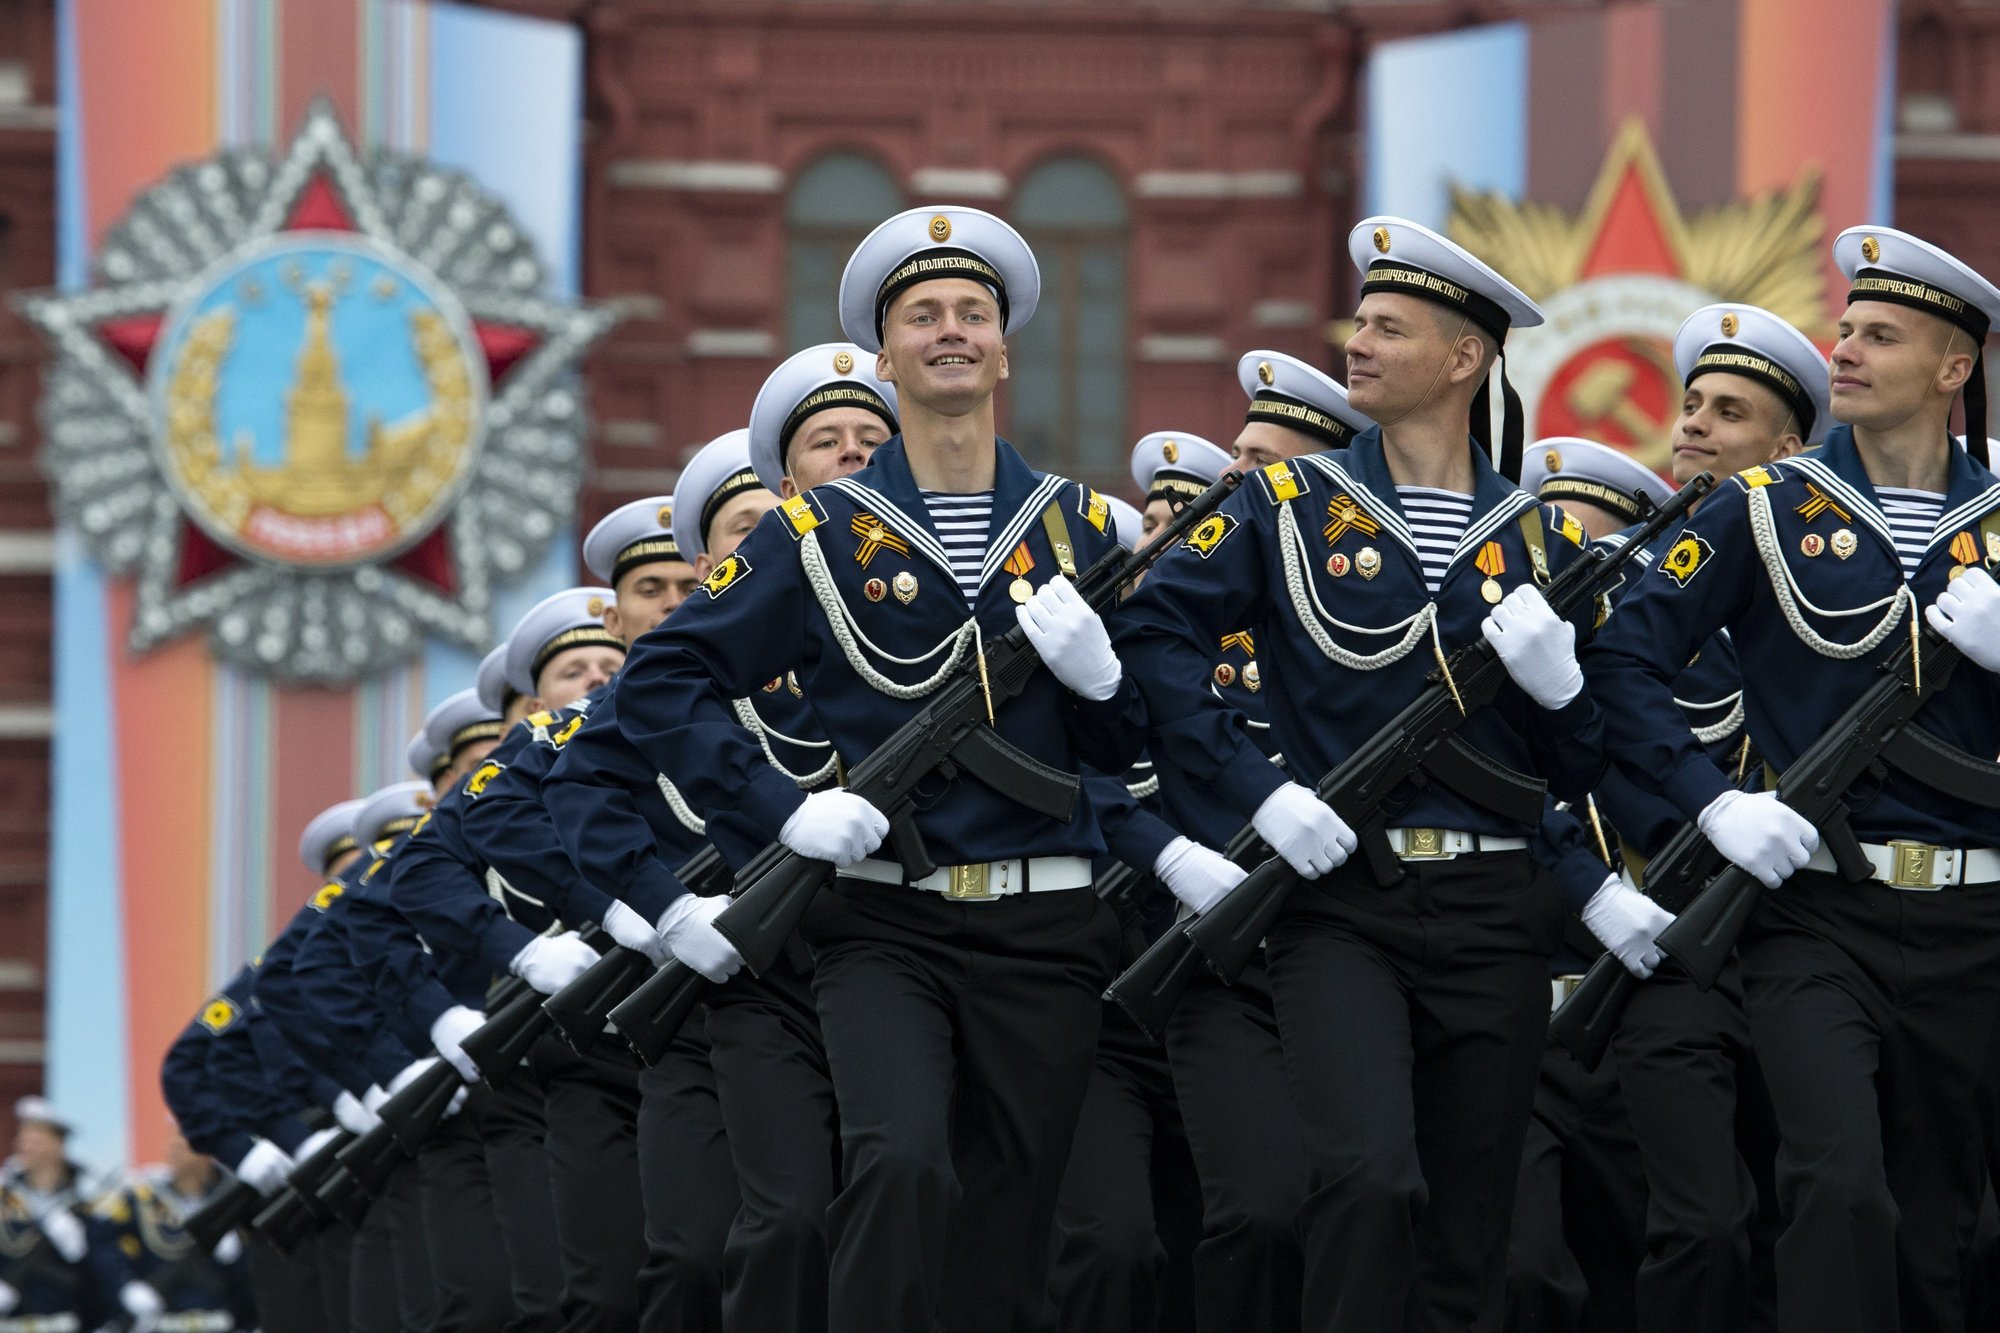 Putin on Victory Day: Russian military will be strengthened